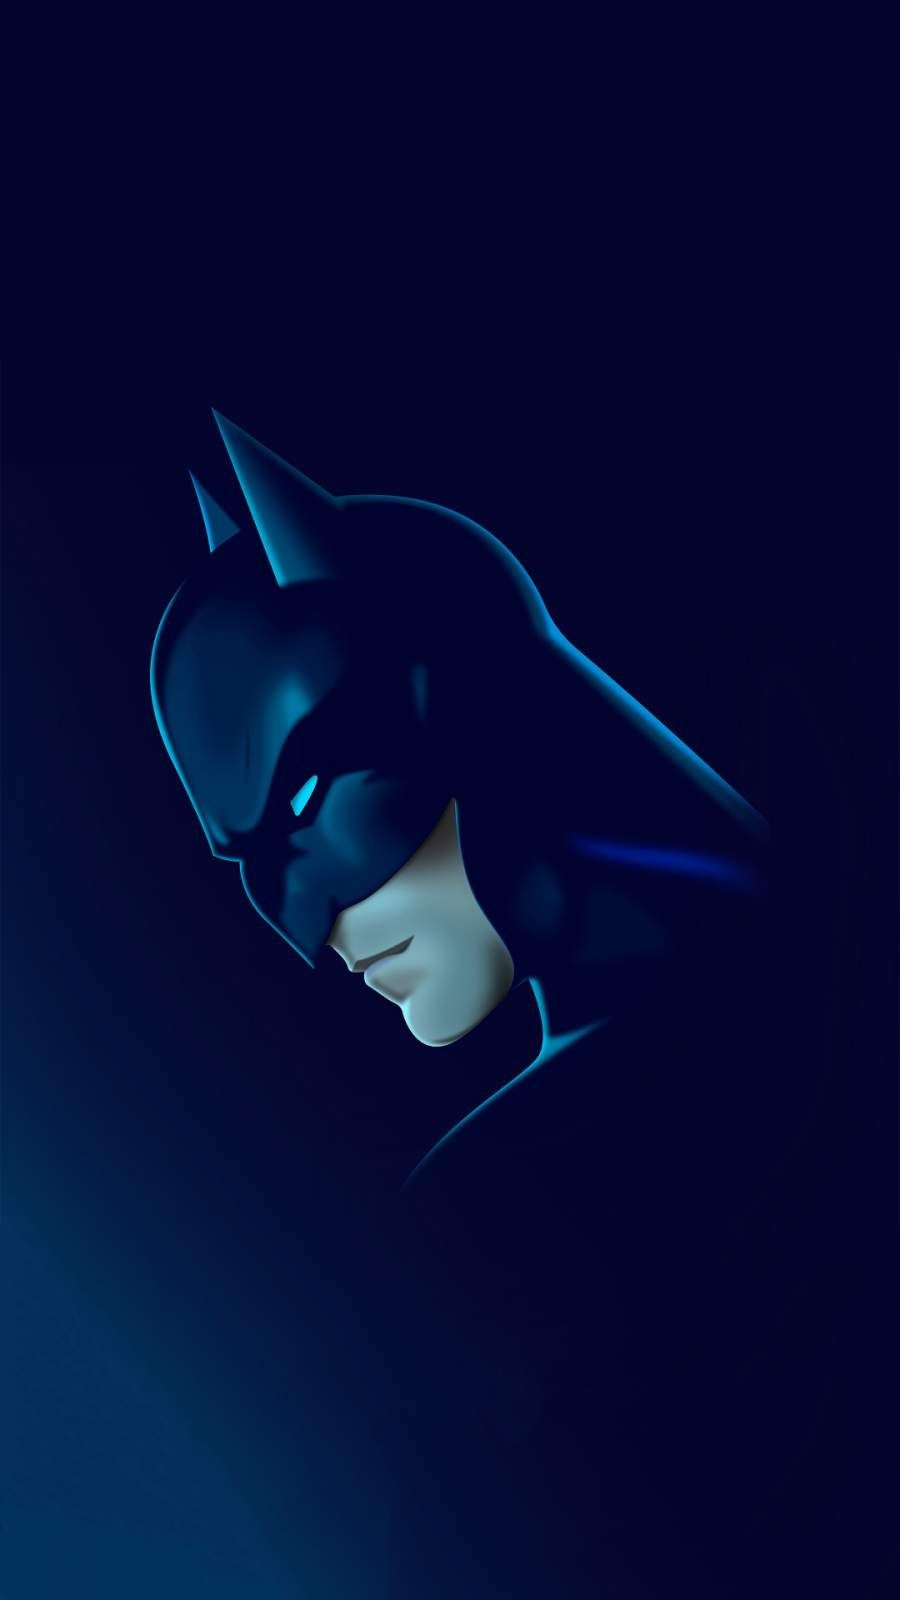 Batman 4k Minimal Iphone Wallpaper In 2020 Iphone Wallpaper Batman Wallpaper